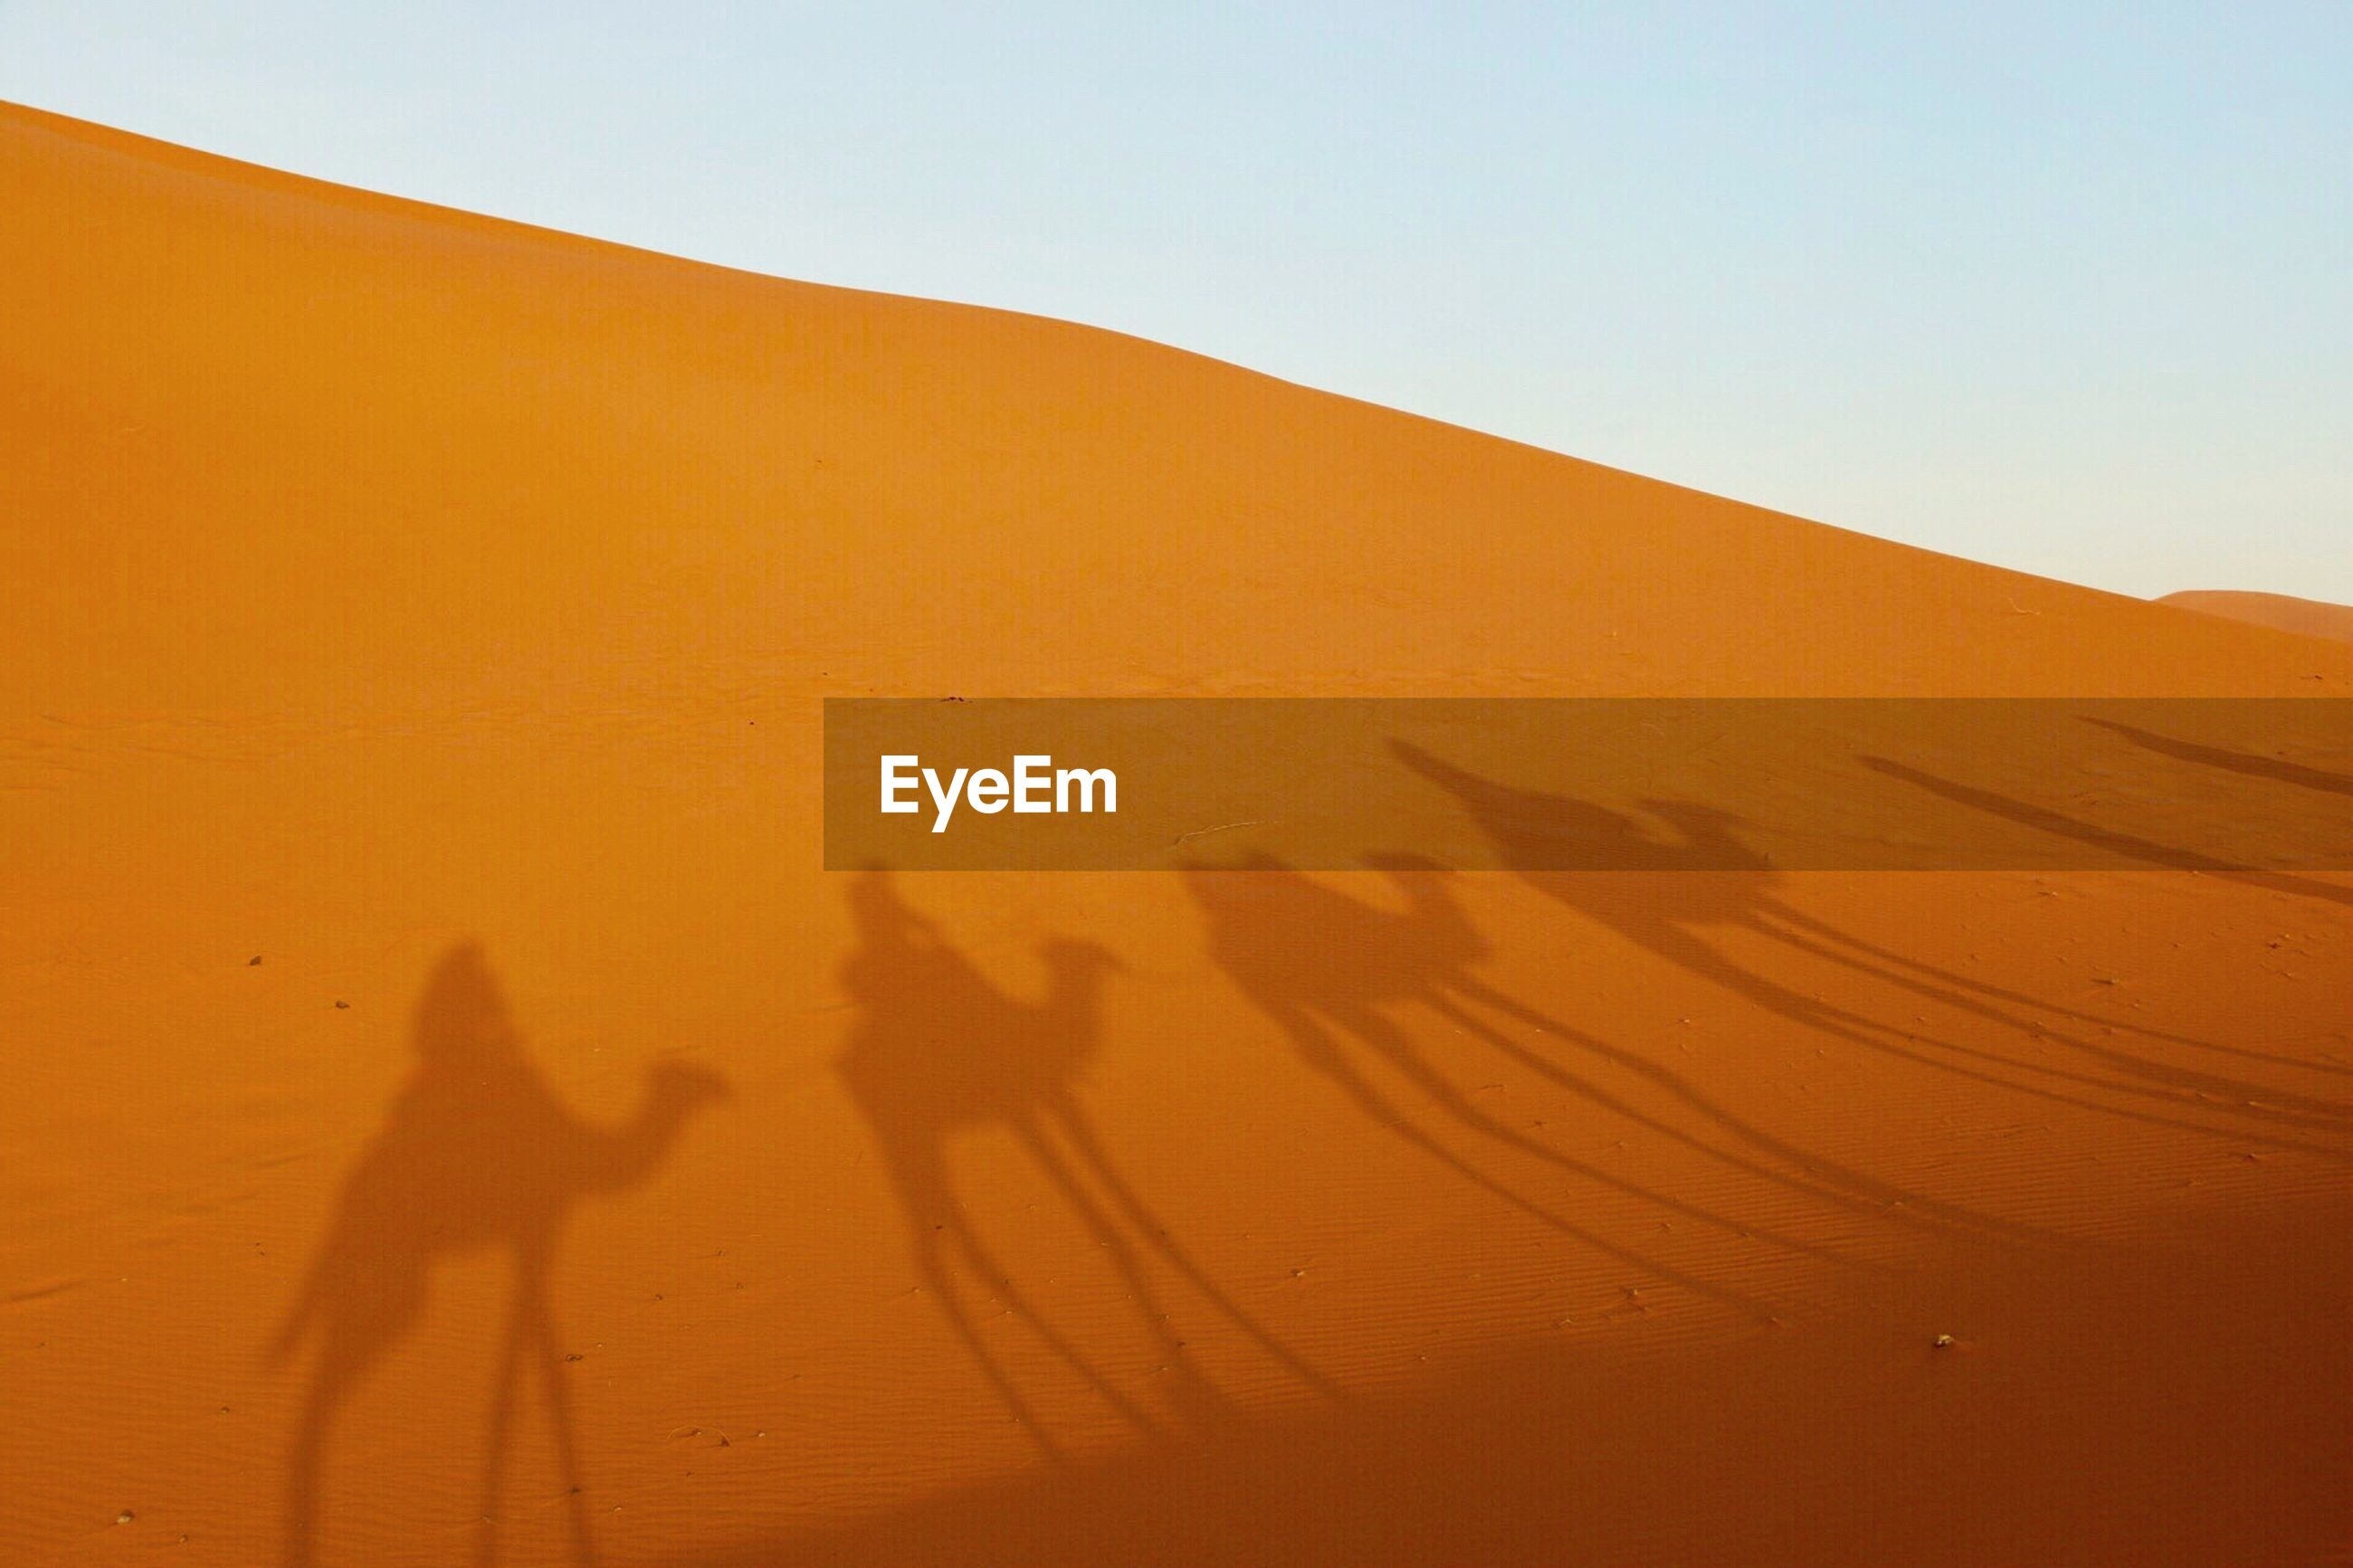 Shadow of people on camel at sand dune in desert against clear sky